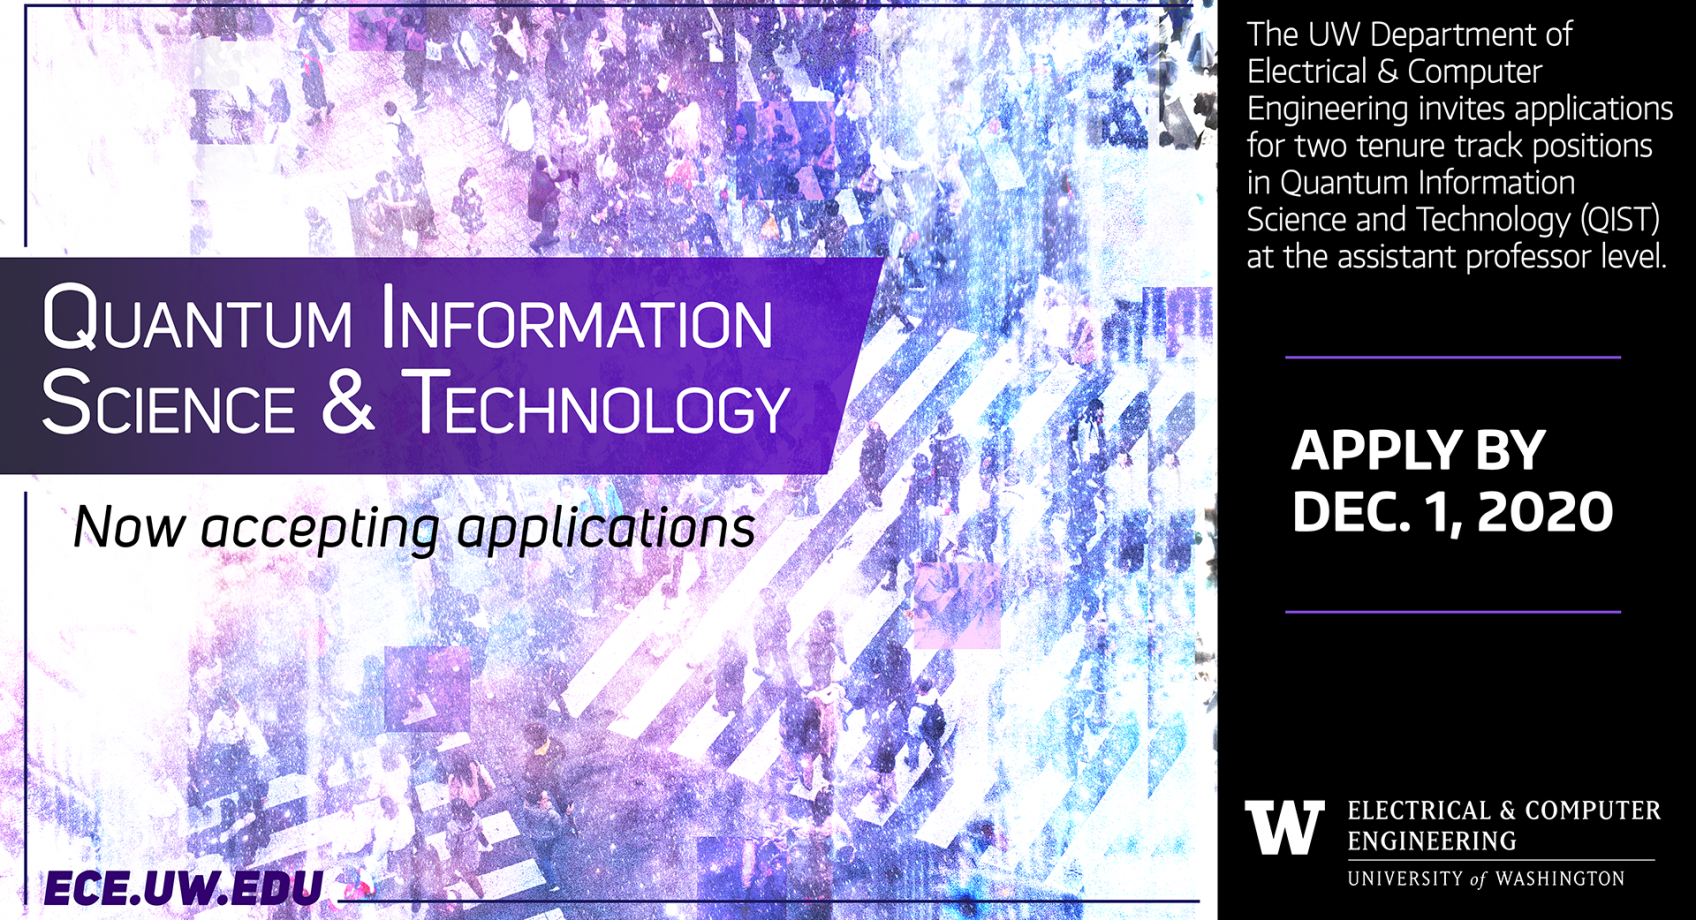 UW ECE seeks outstanding faculty candidates in quantum information science & technology Banner